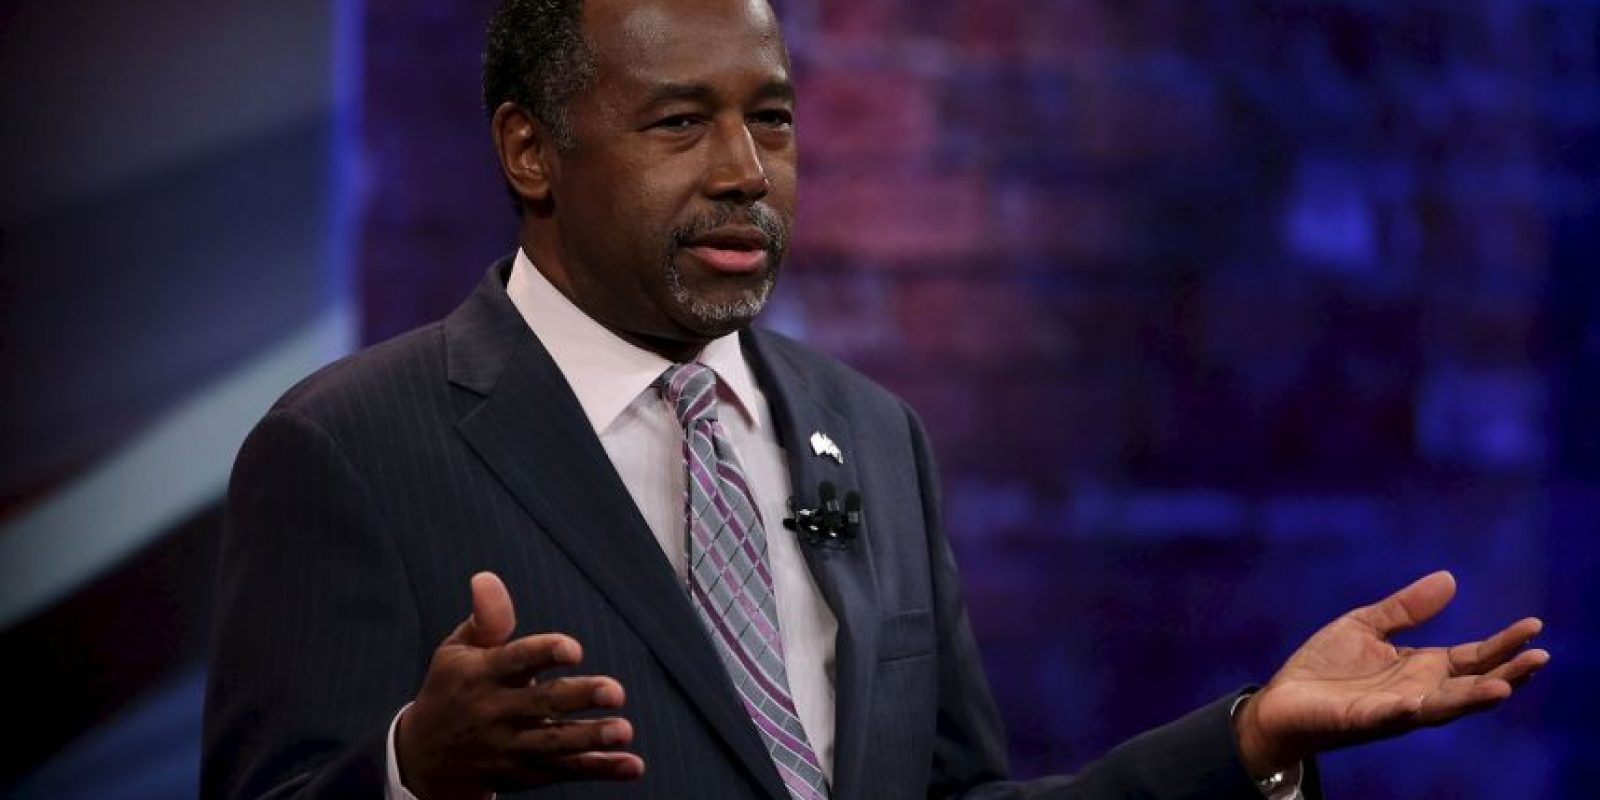 Ben Carson Foto: Getty Images